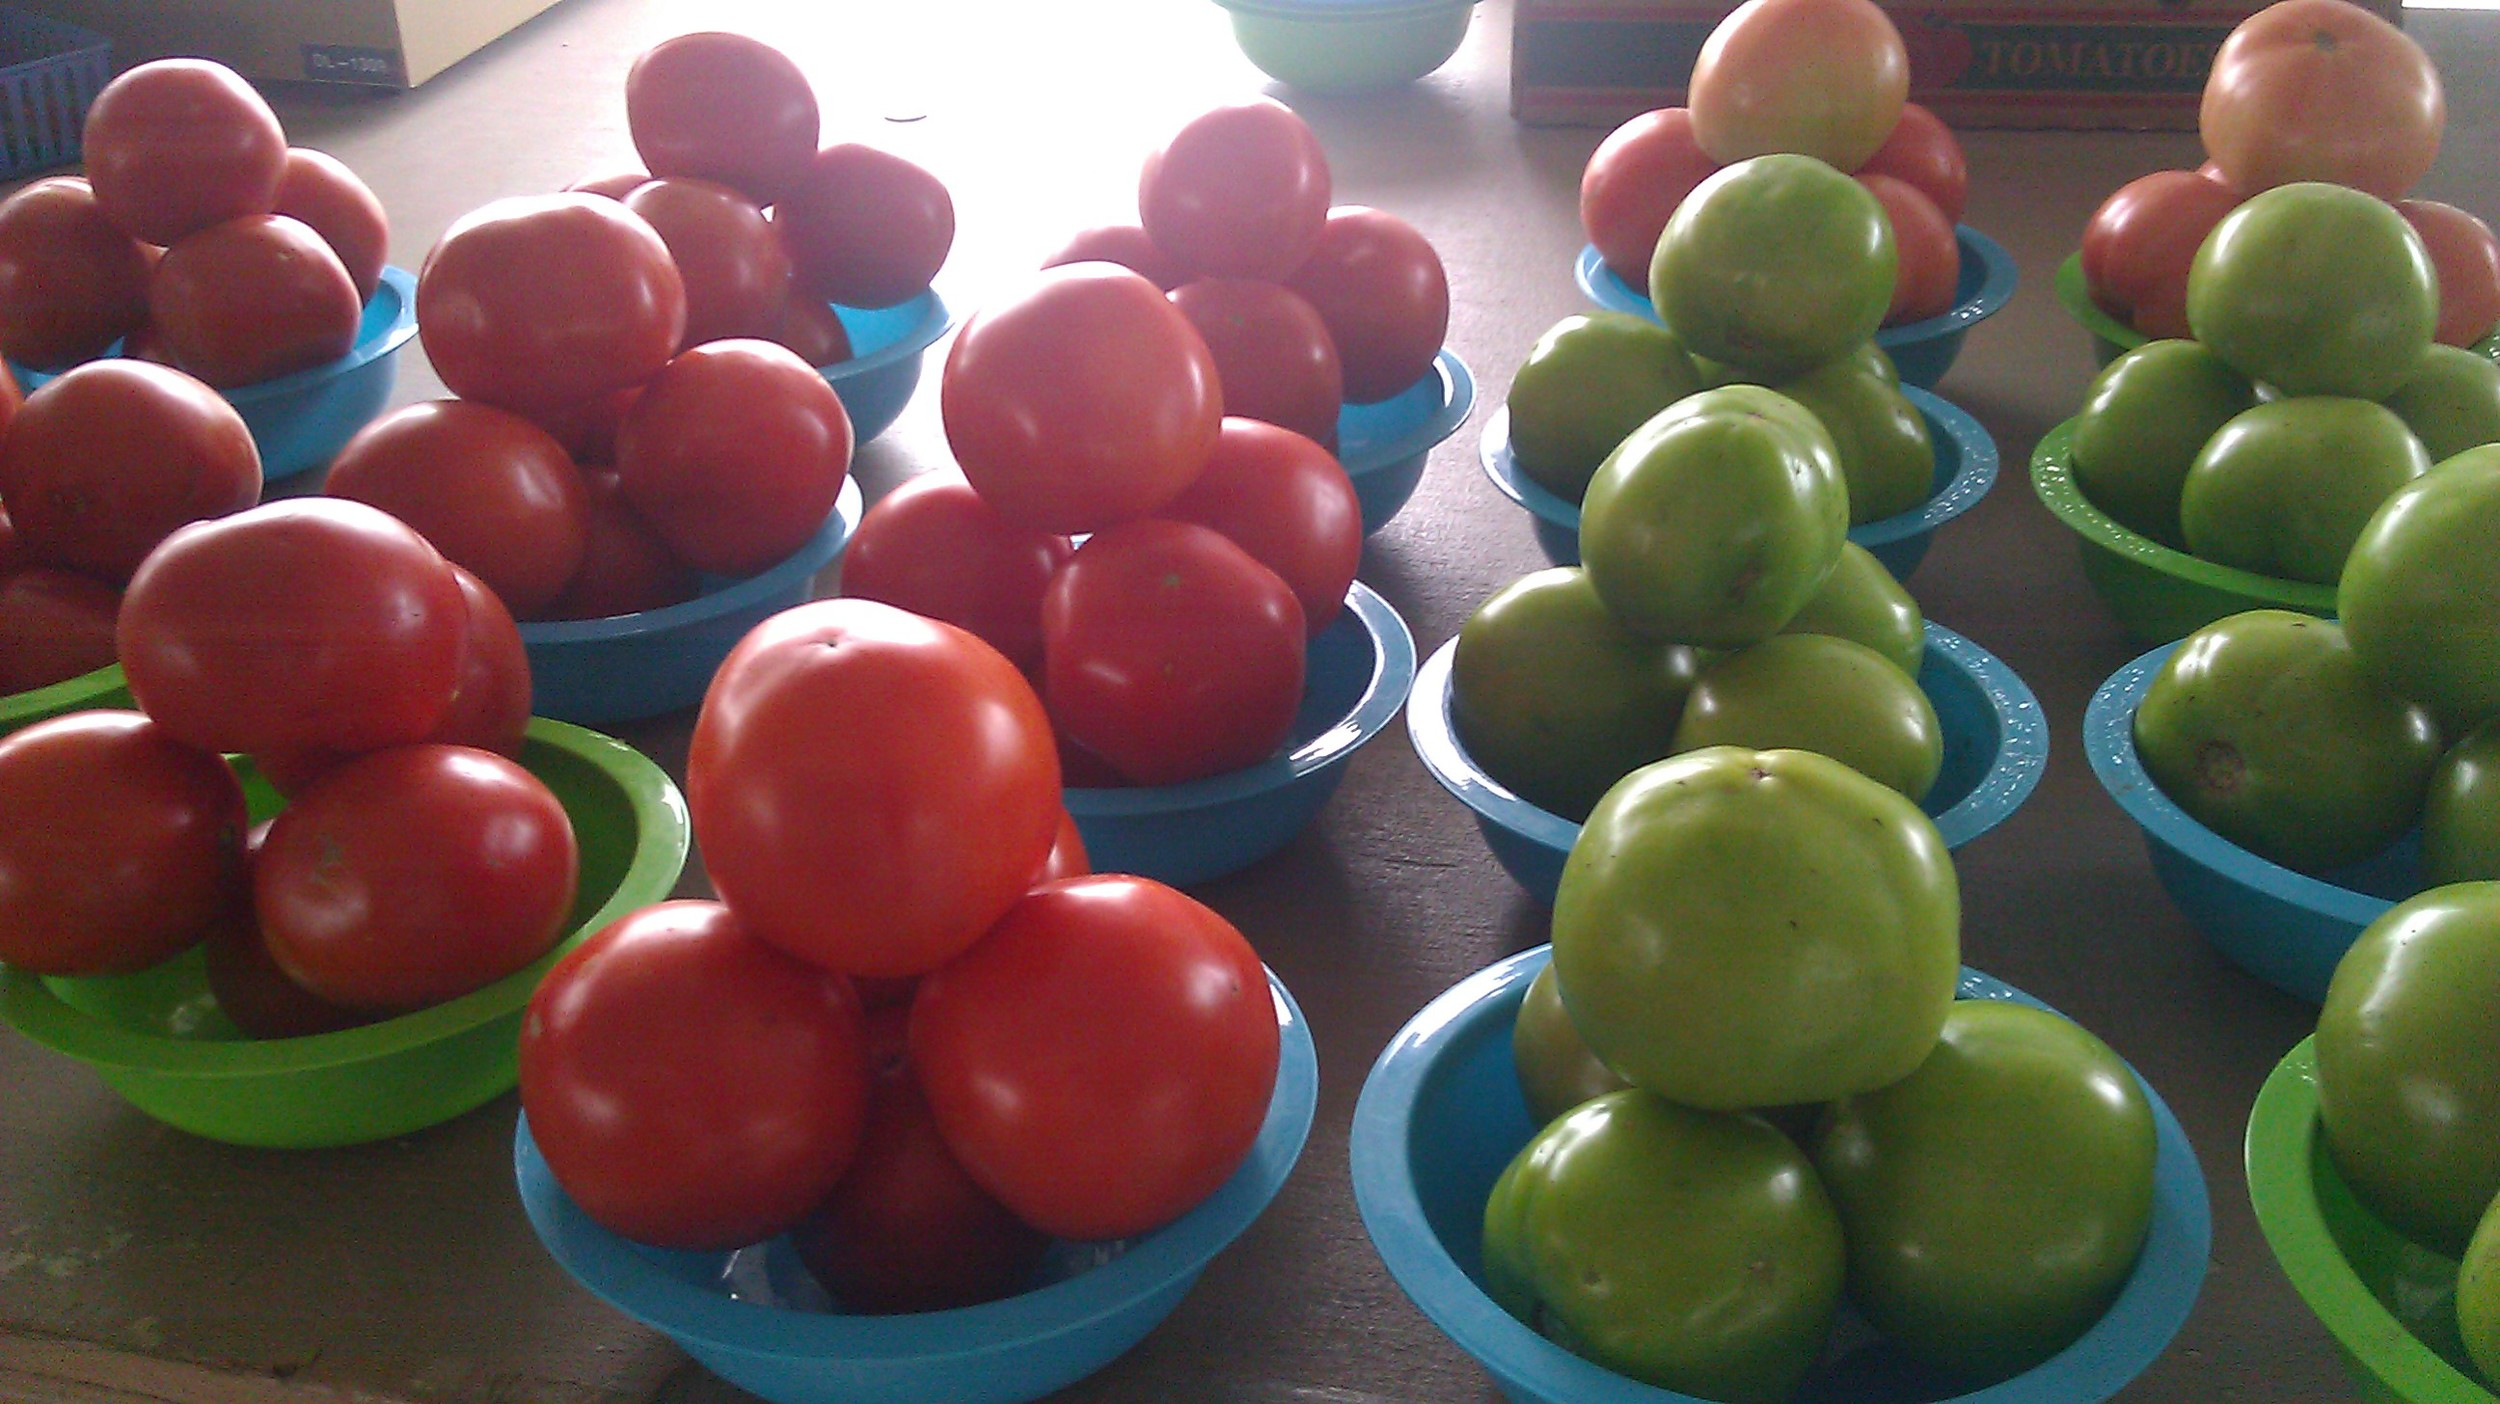 Tomatoes from the local farm stand.